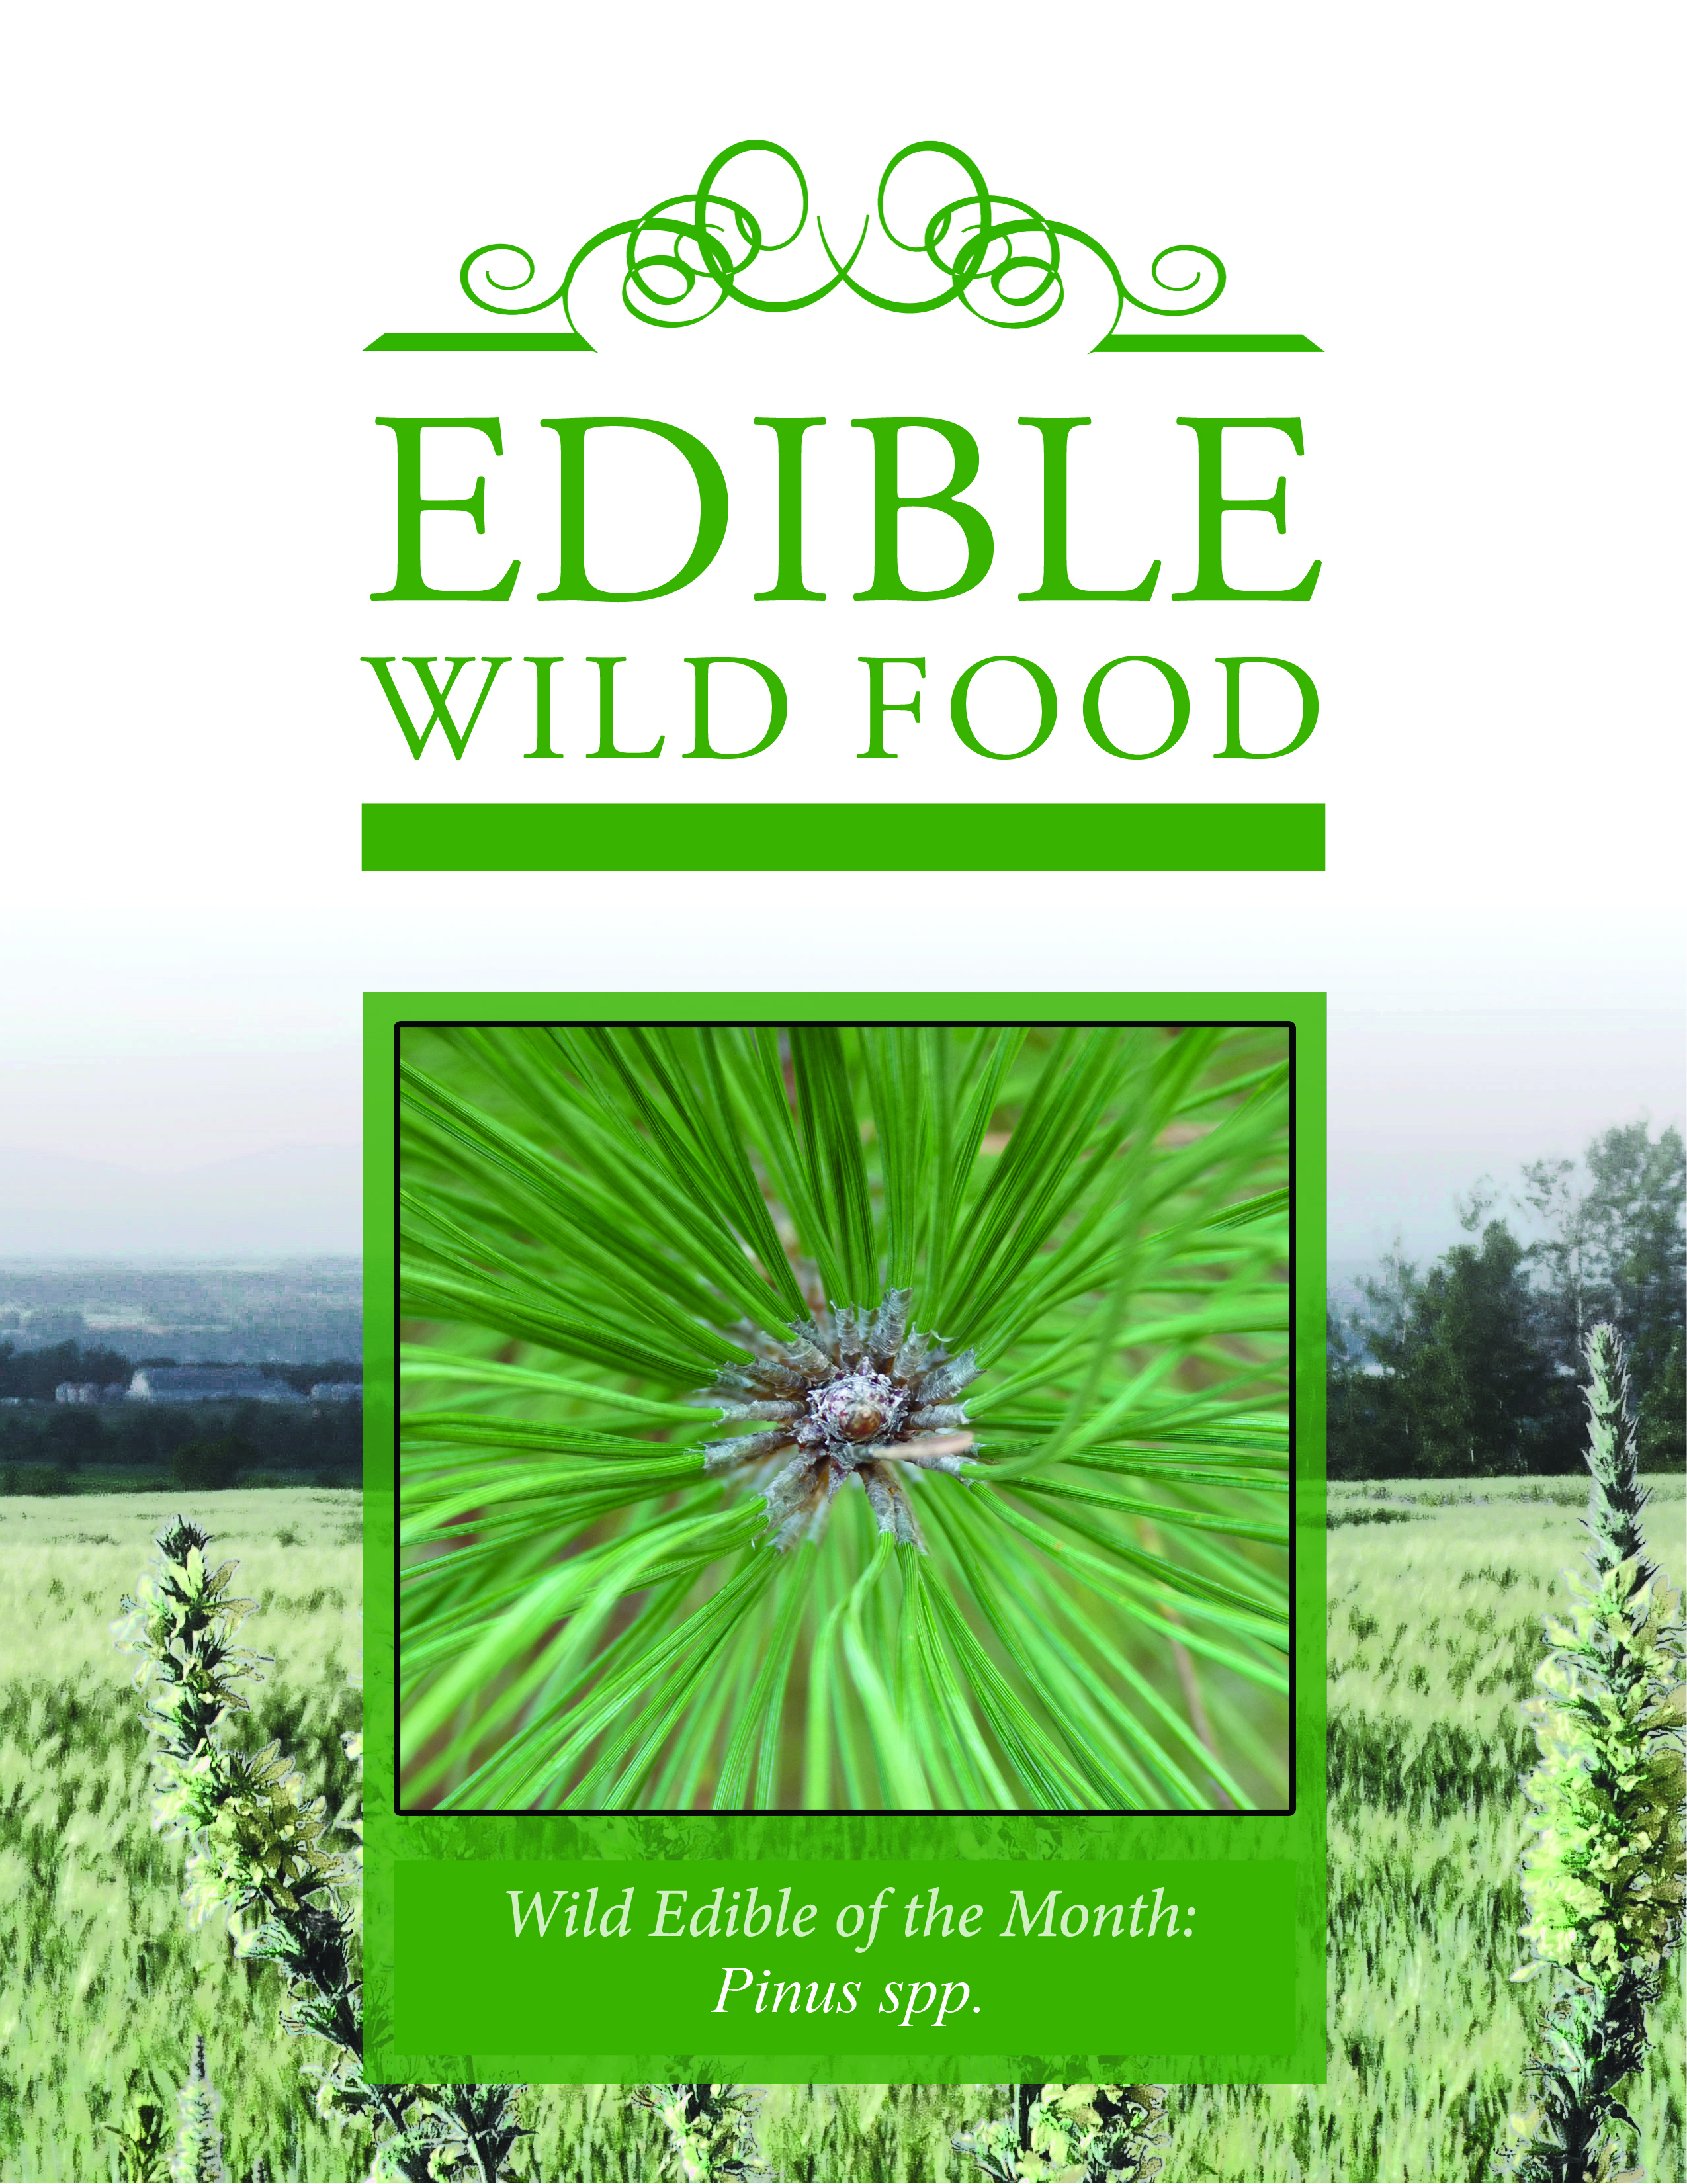 Edible Wild Food: Edible of the Month Subscription Review